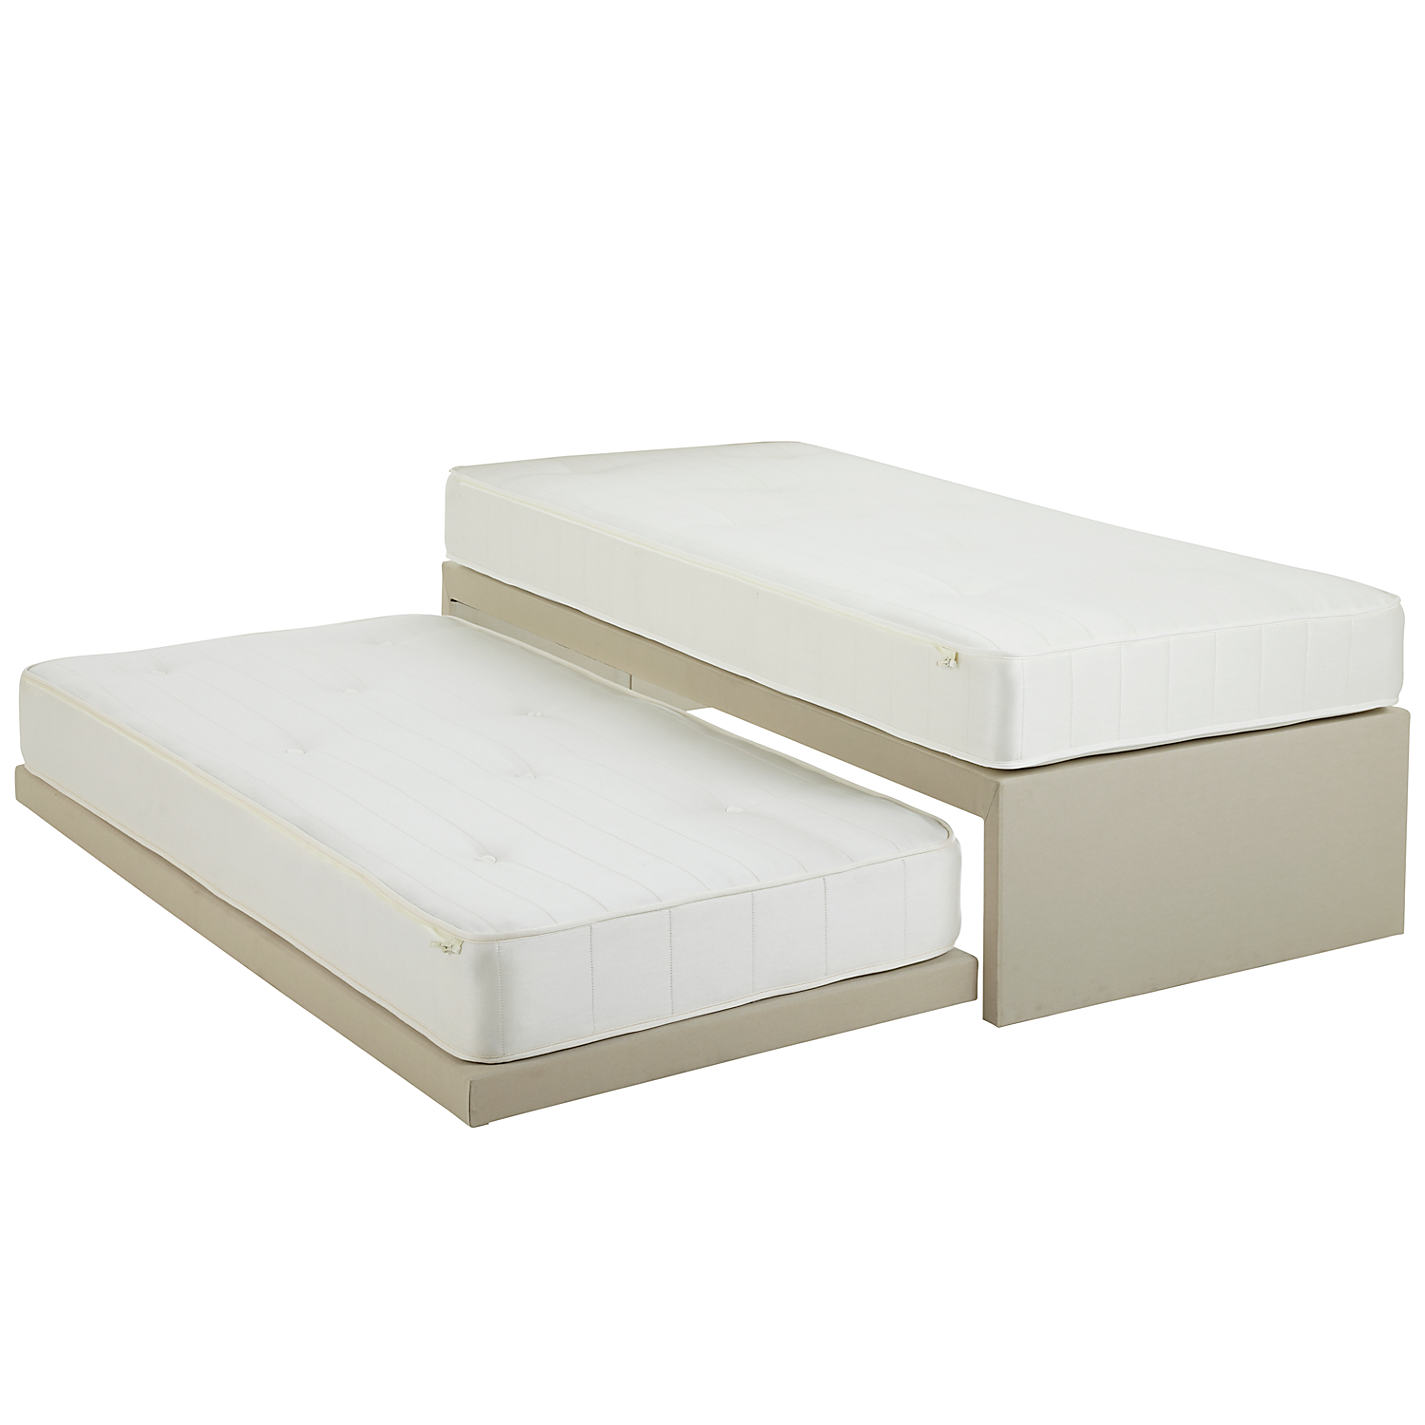 Single bed with guest bed underneath - White Guest Bed Solution